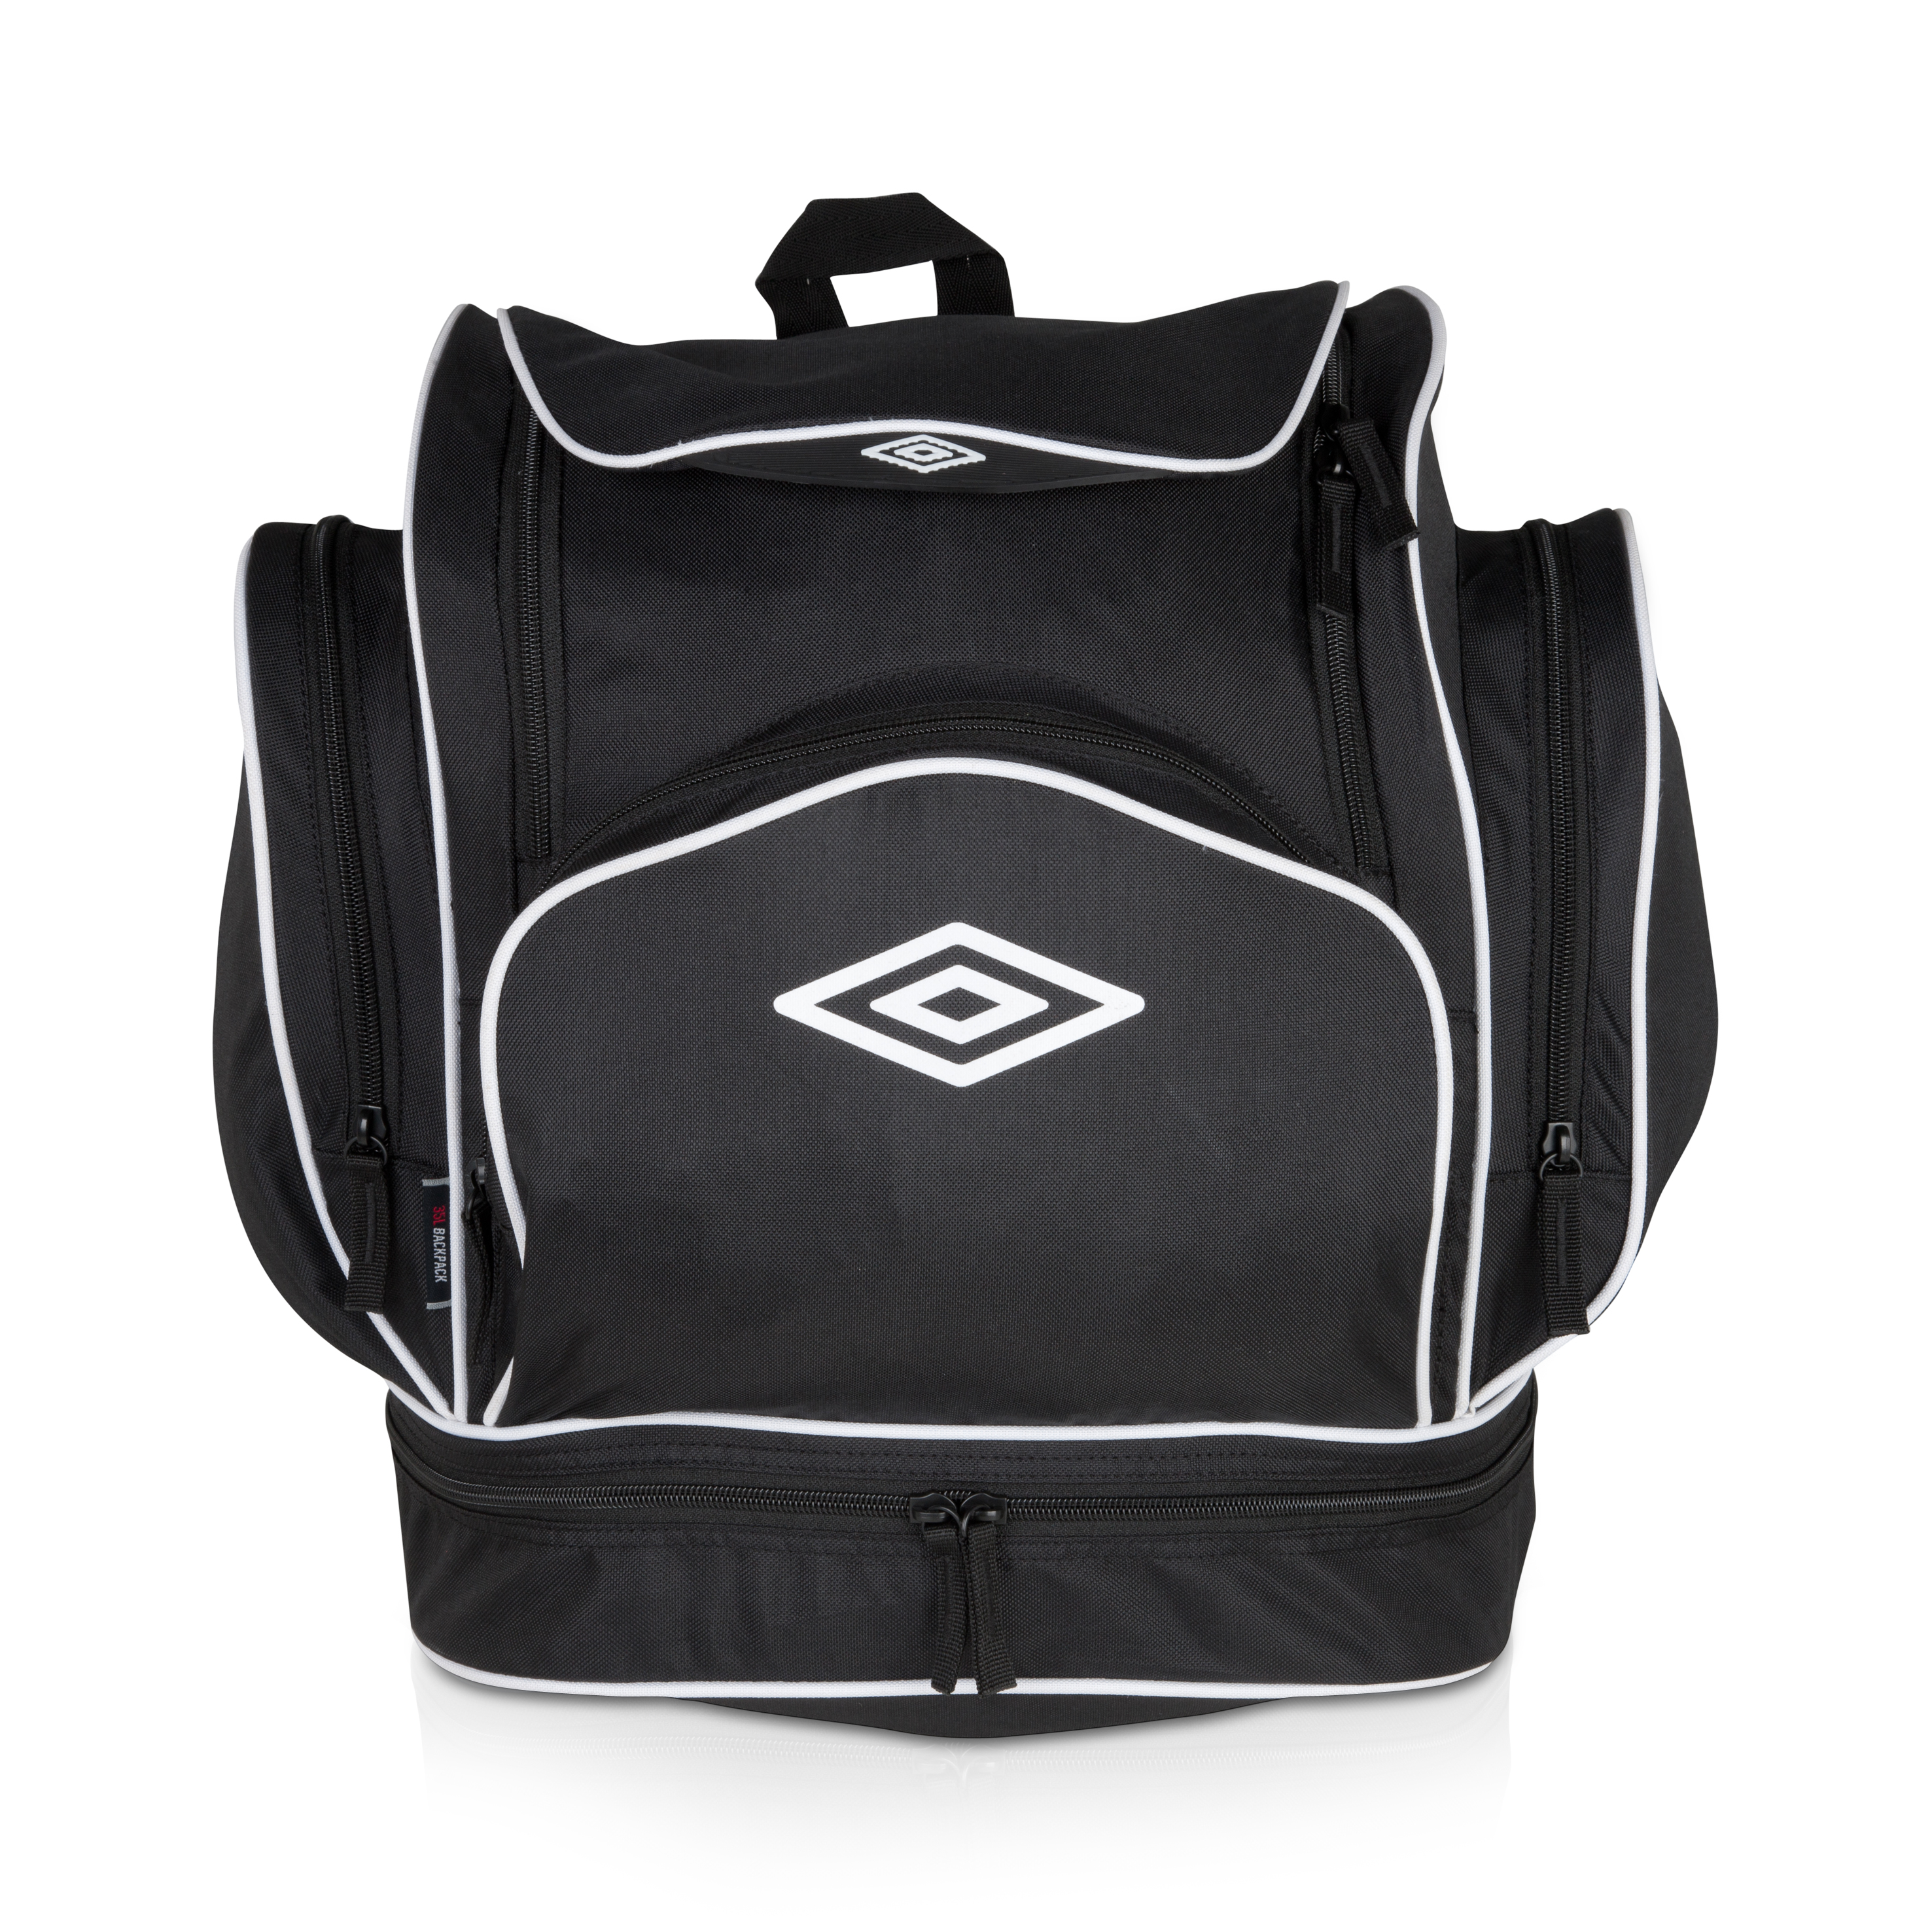 Umbro Italia Backpack - Black / White